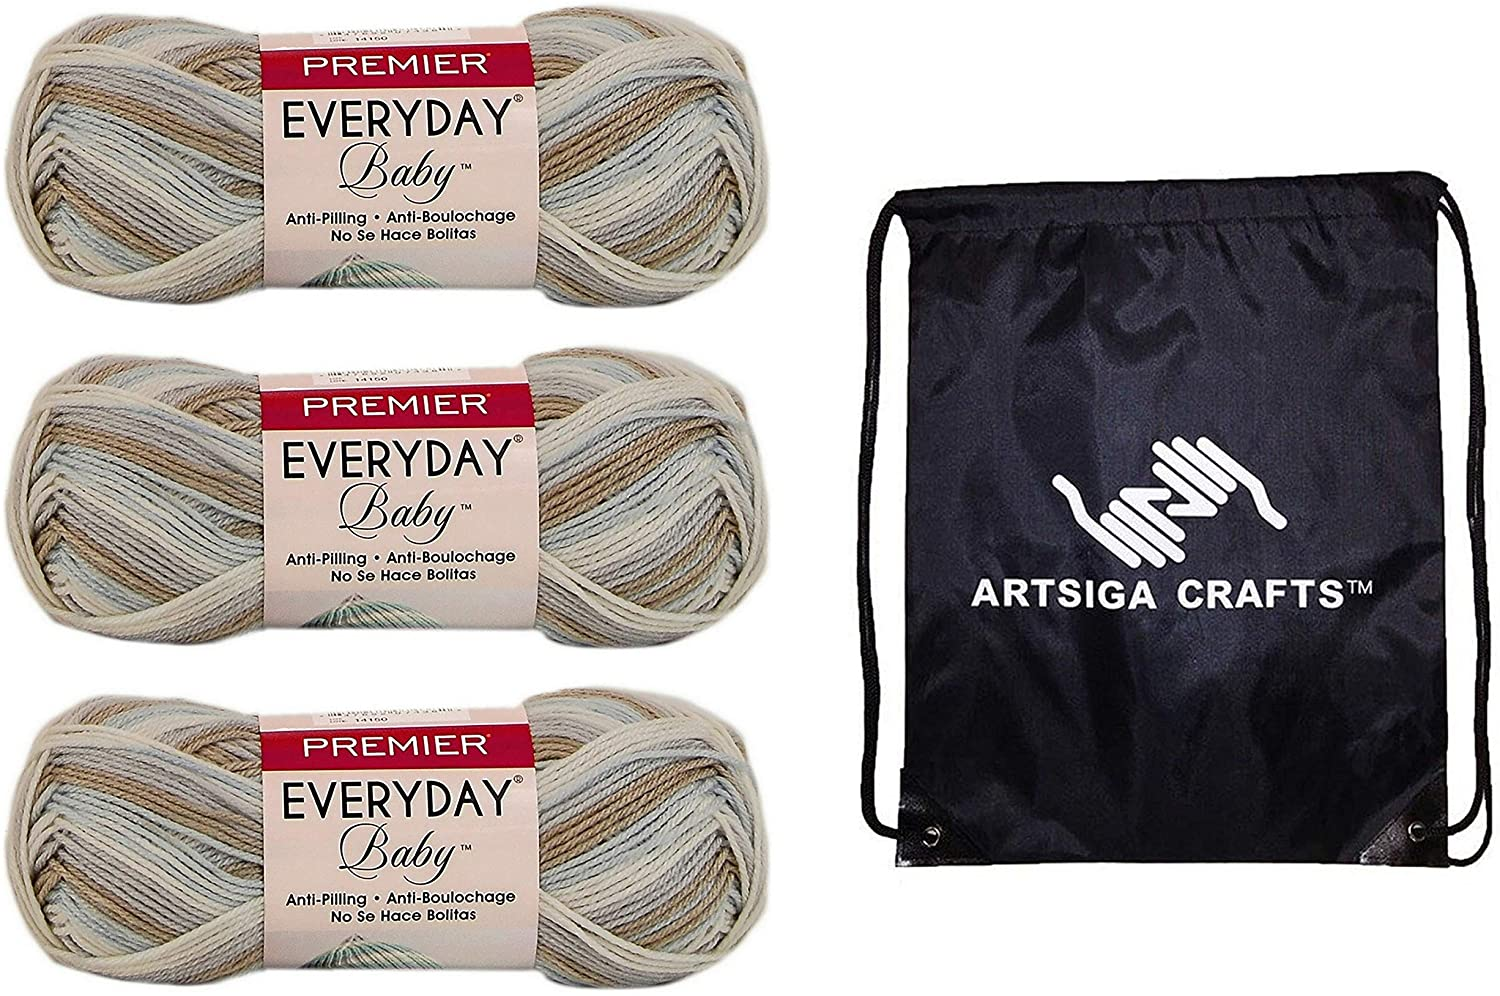 Premier Knitting Yarn Everyday Baby Multi Lullaby 3-Skein Factory Pack (Same Dye Lot) DN102-13 Bundle with 1 Artsiga Crafts Project Bag